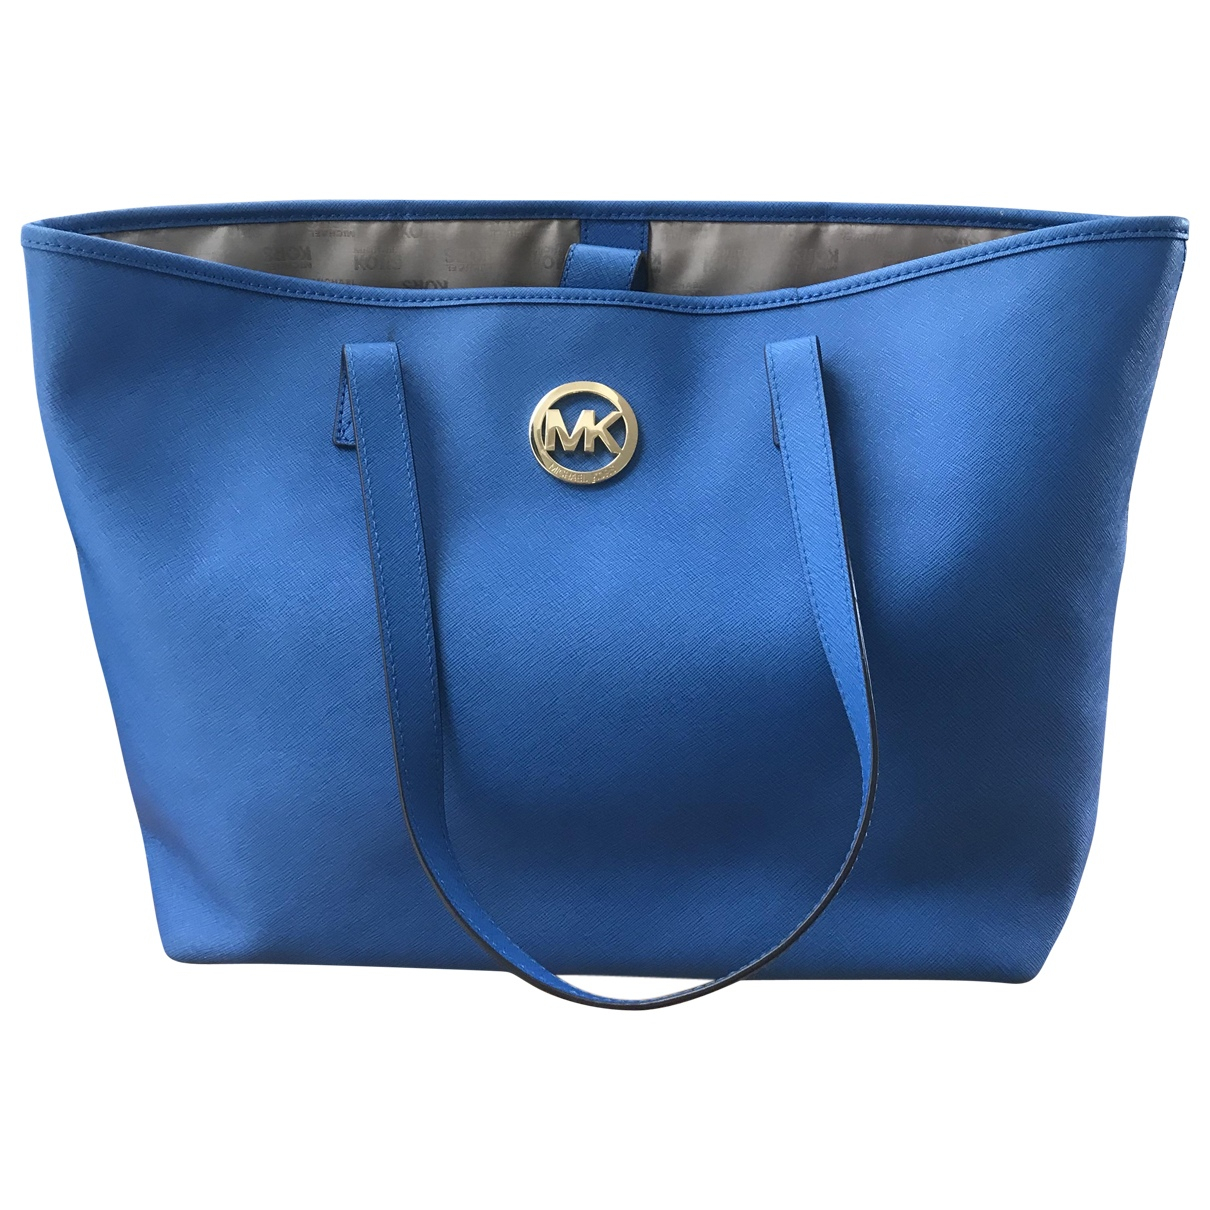 Michael Kors \N Blue Leather handbag for Women \N